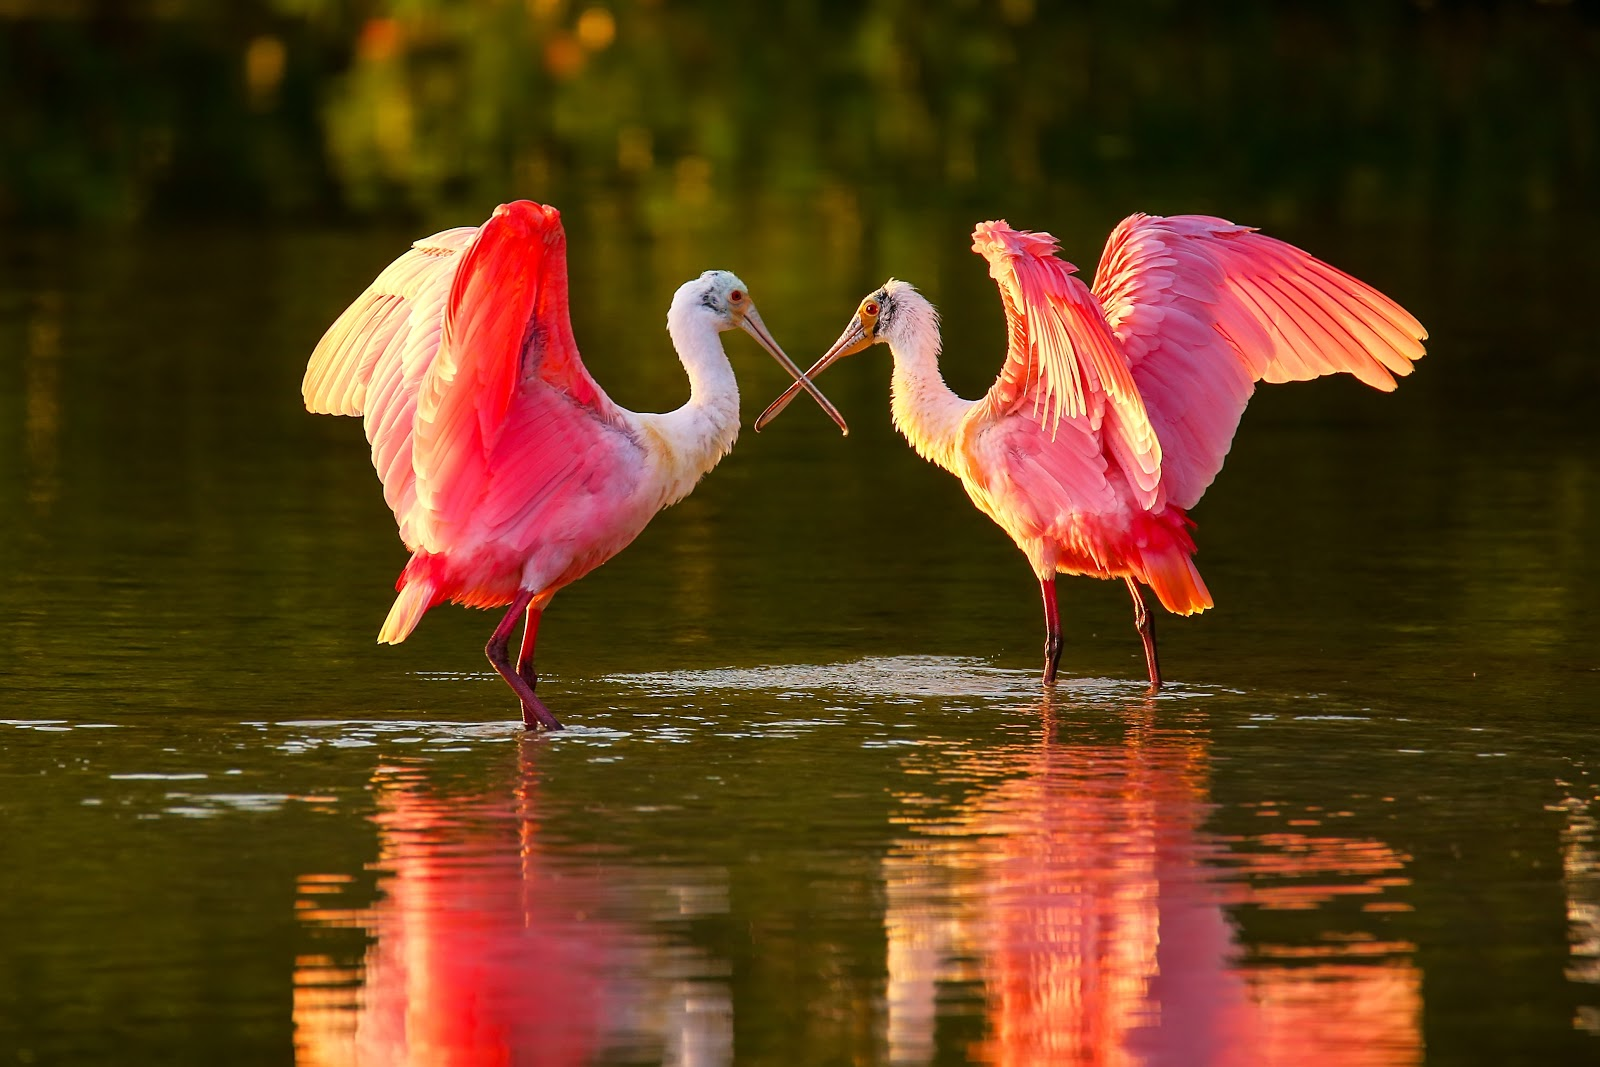 A pair of Roseate Spoonbills dance in the setting sun of Everglades National Park.